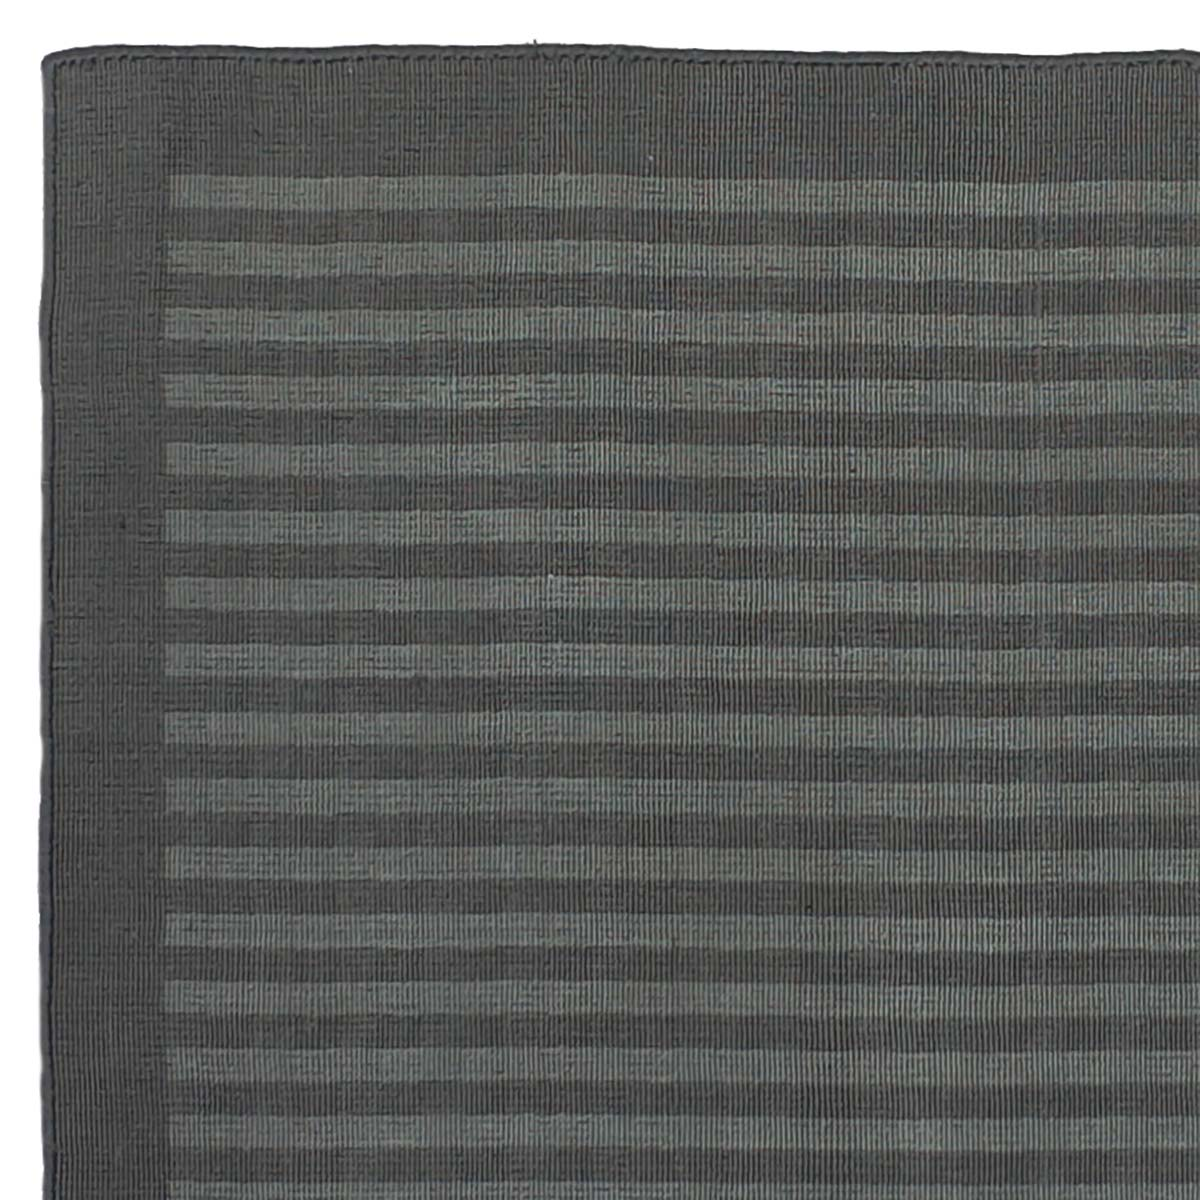 STARDS1_LuxeSpotted_Charcoal_160x230-underside